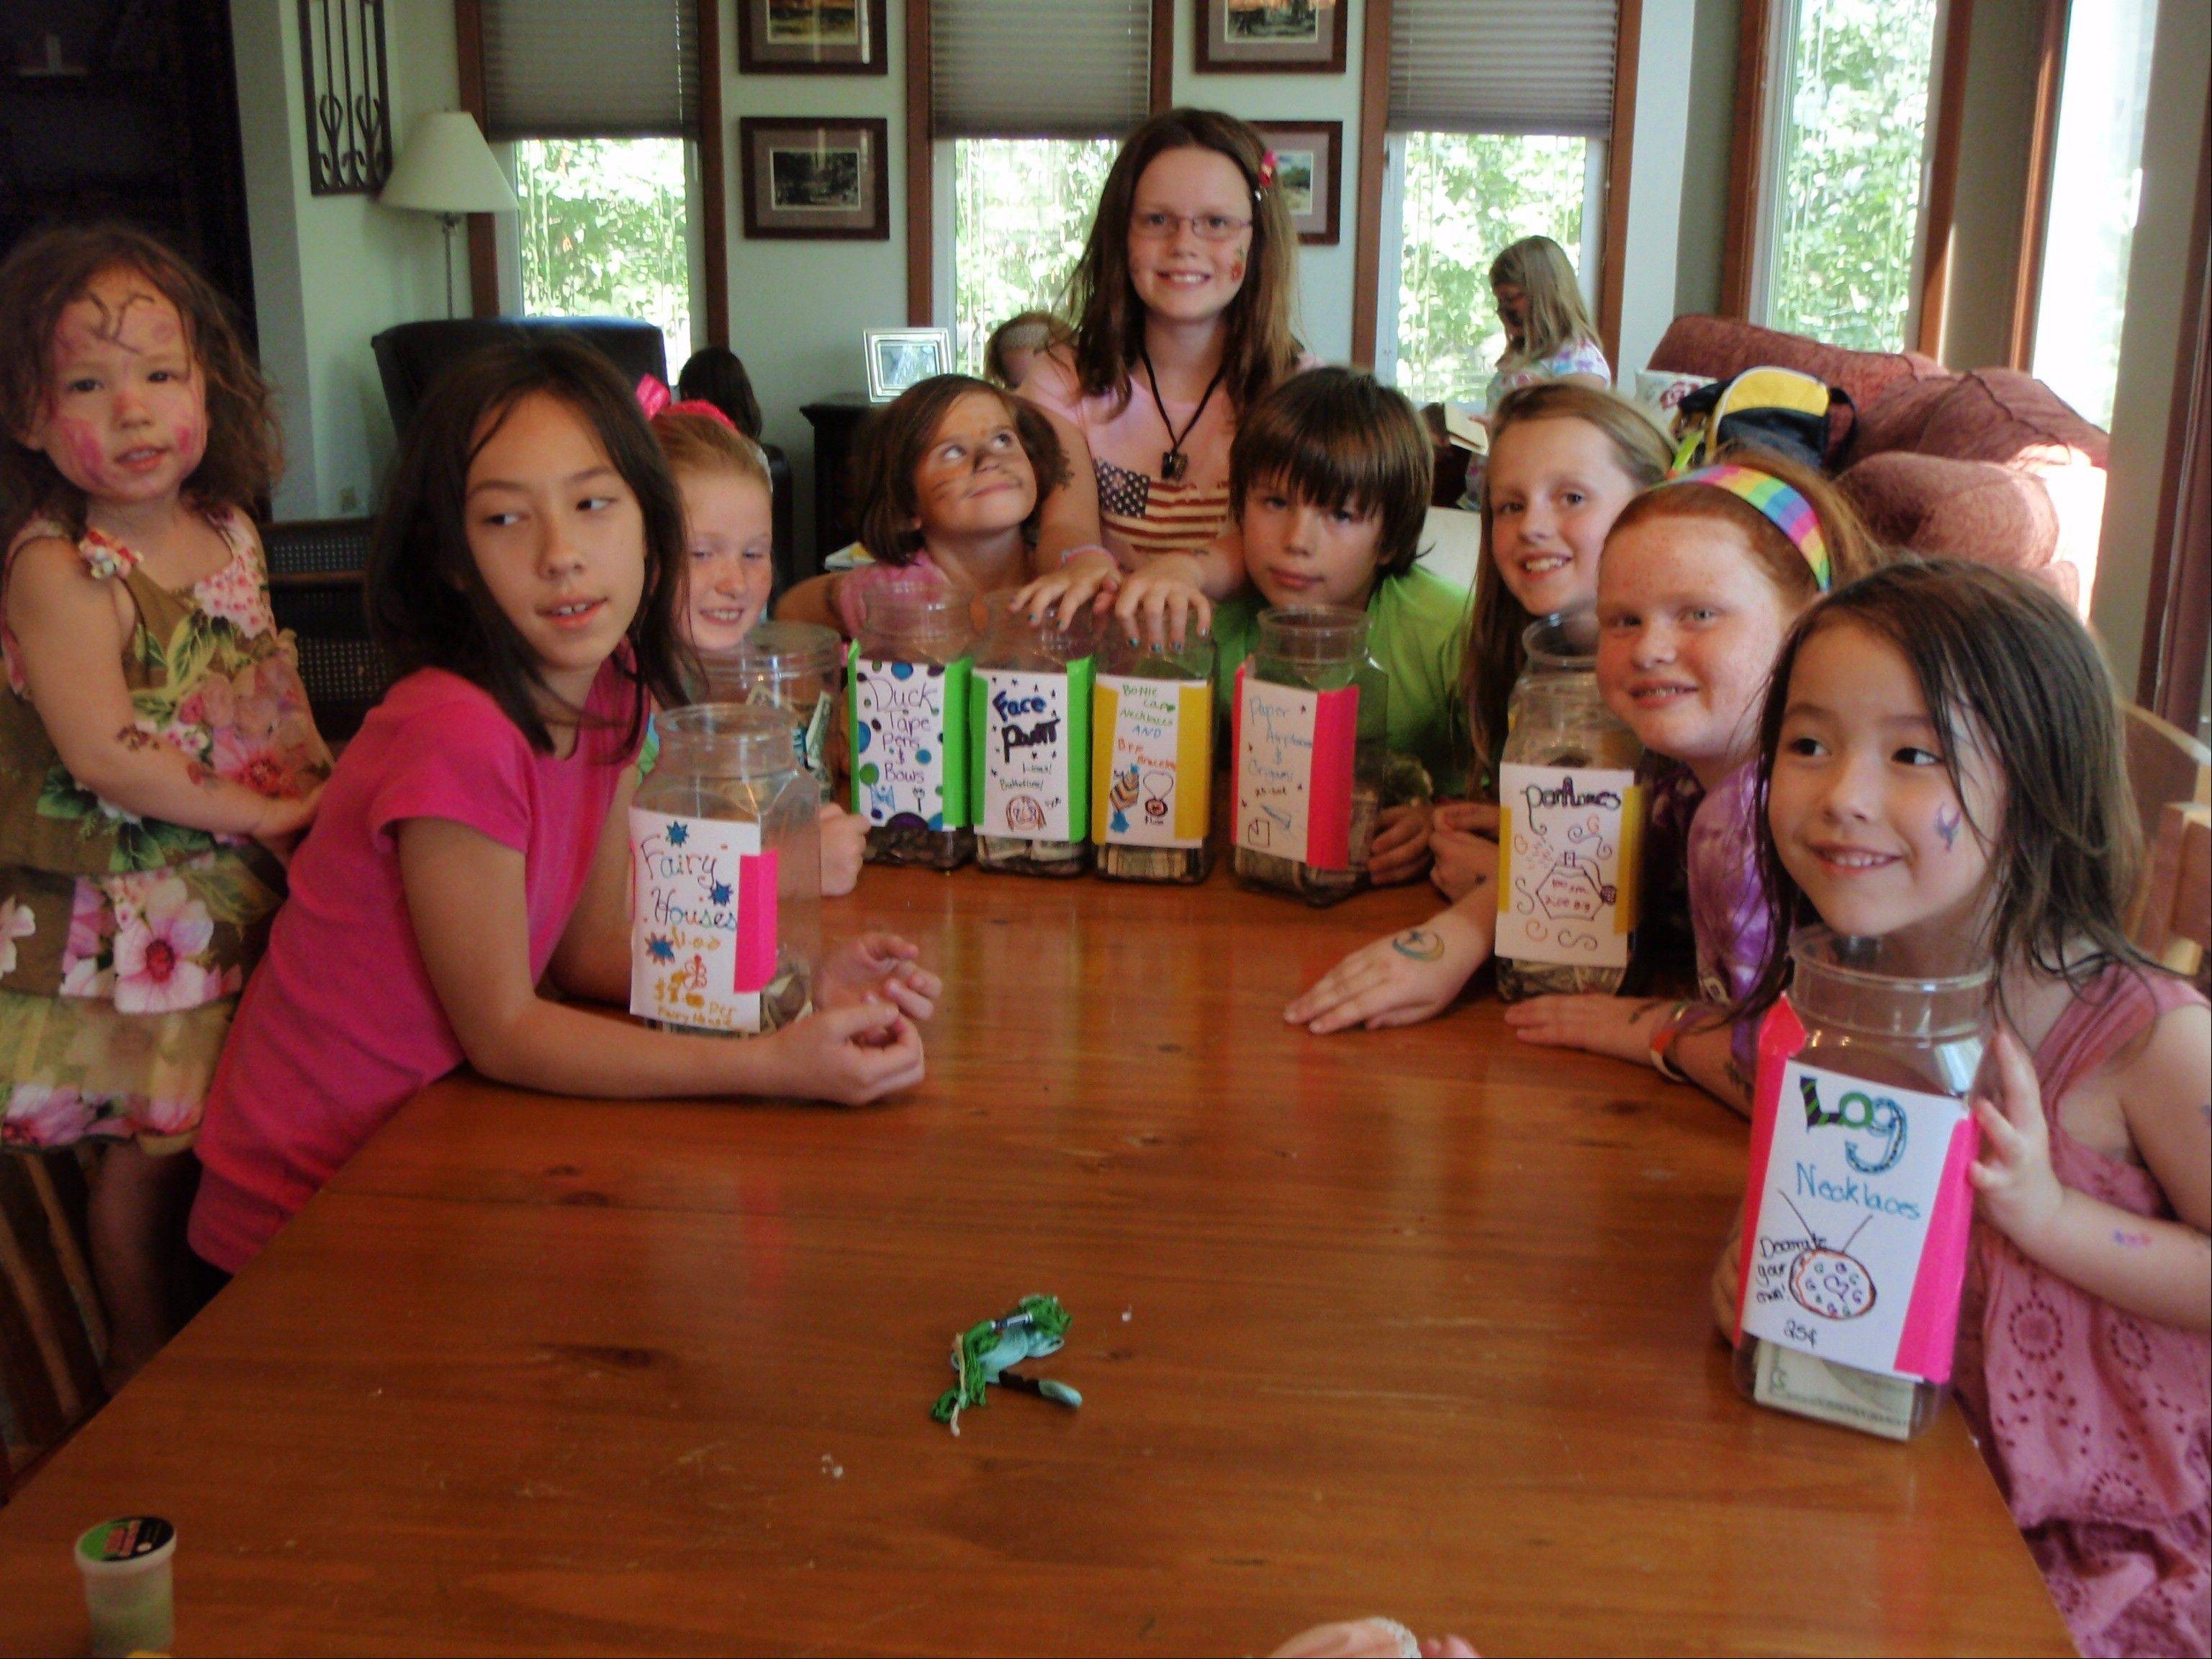 Ten-year-old Abby Glenzinski of Lombard, second from right, and several of her friends hosted a Fun Fair Wednesday and raised more than $700 for the family of 5-year-old heart transplant recipient Tim Grobart of Lombard. Shown here with the crafts they sold for donations are Niamh Lashmet, 2, of Lombard; Fiona Lashmet, 10, of Lombard; Grace Van Petten, 10, of Lombard; Cleo Glenzinski, 5, of Lombard; Nicole Farrow, 10, of Elmhurst; Thomas Glenzinski, 9, of Lombard; Shannon Farrow, 8, of Elmhurst; Abby; and Callie Lashmet, 5, of Lombard.